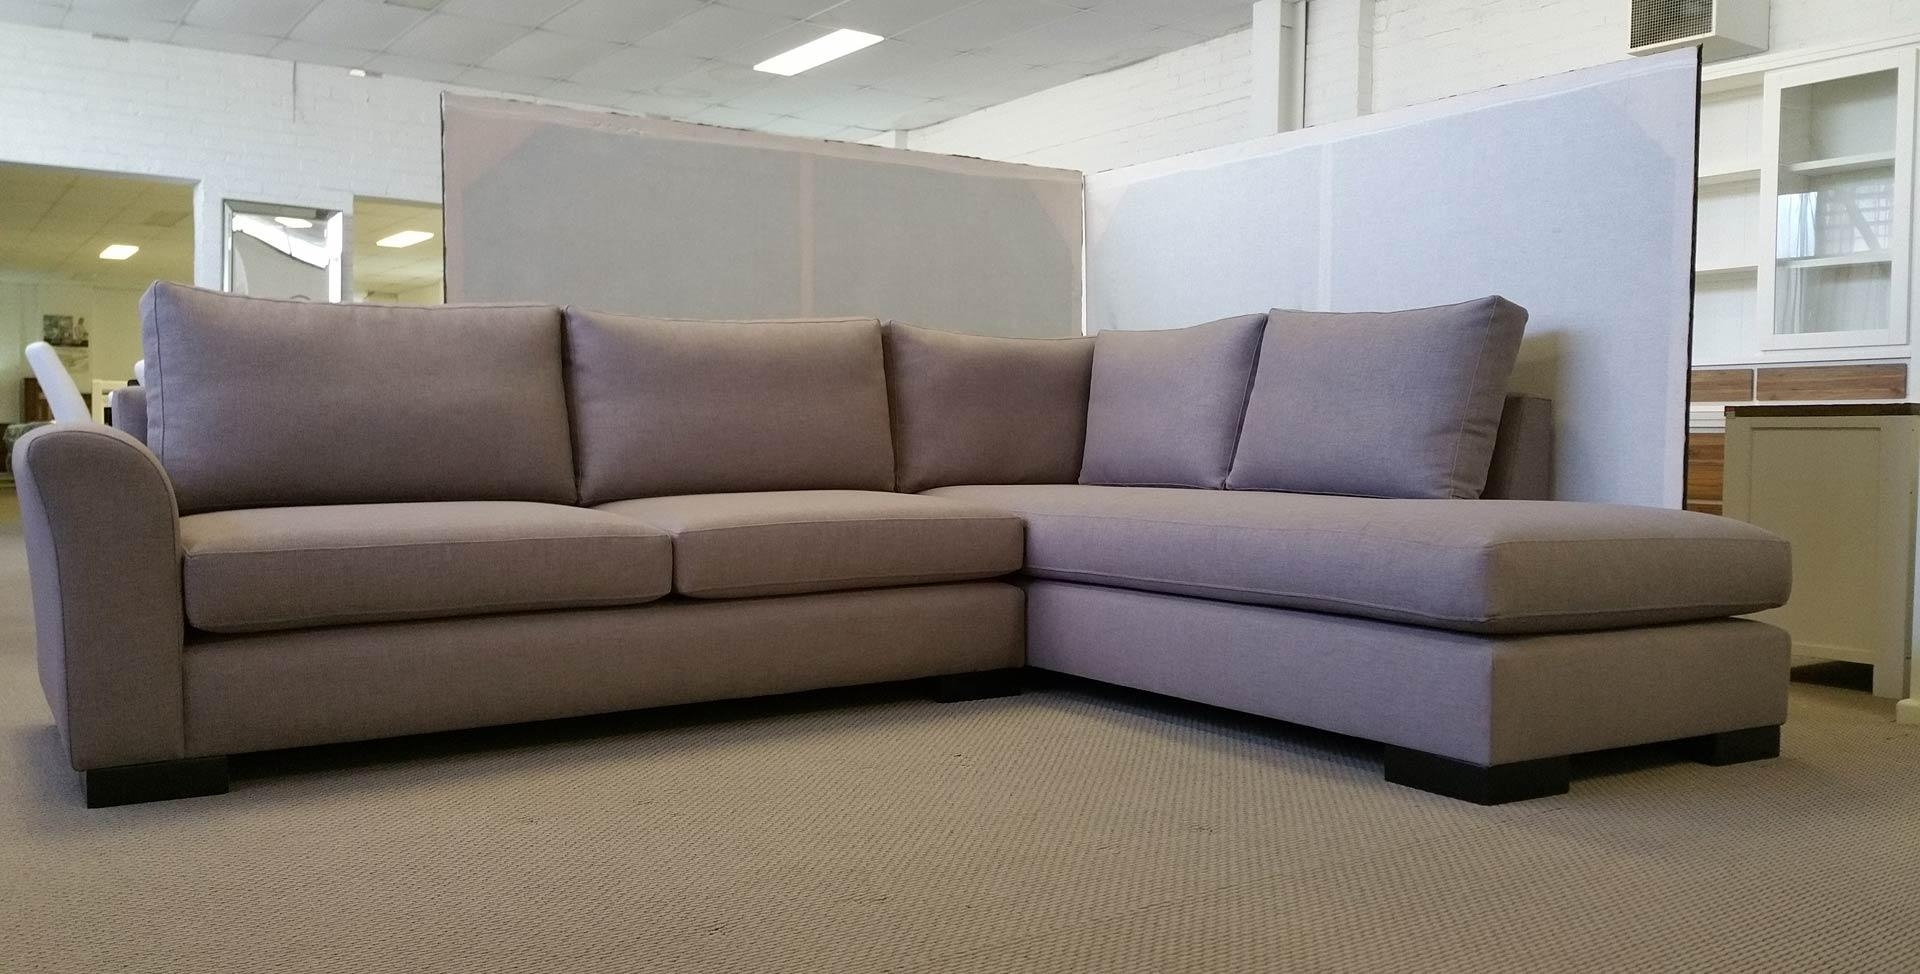 Euro Sofa Direct Pty Ltd In Euro Sofas (Image 9 of 20)